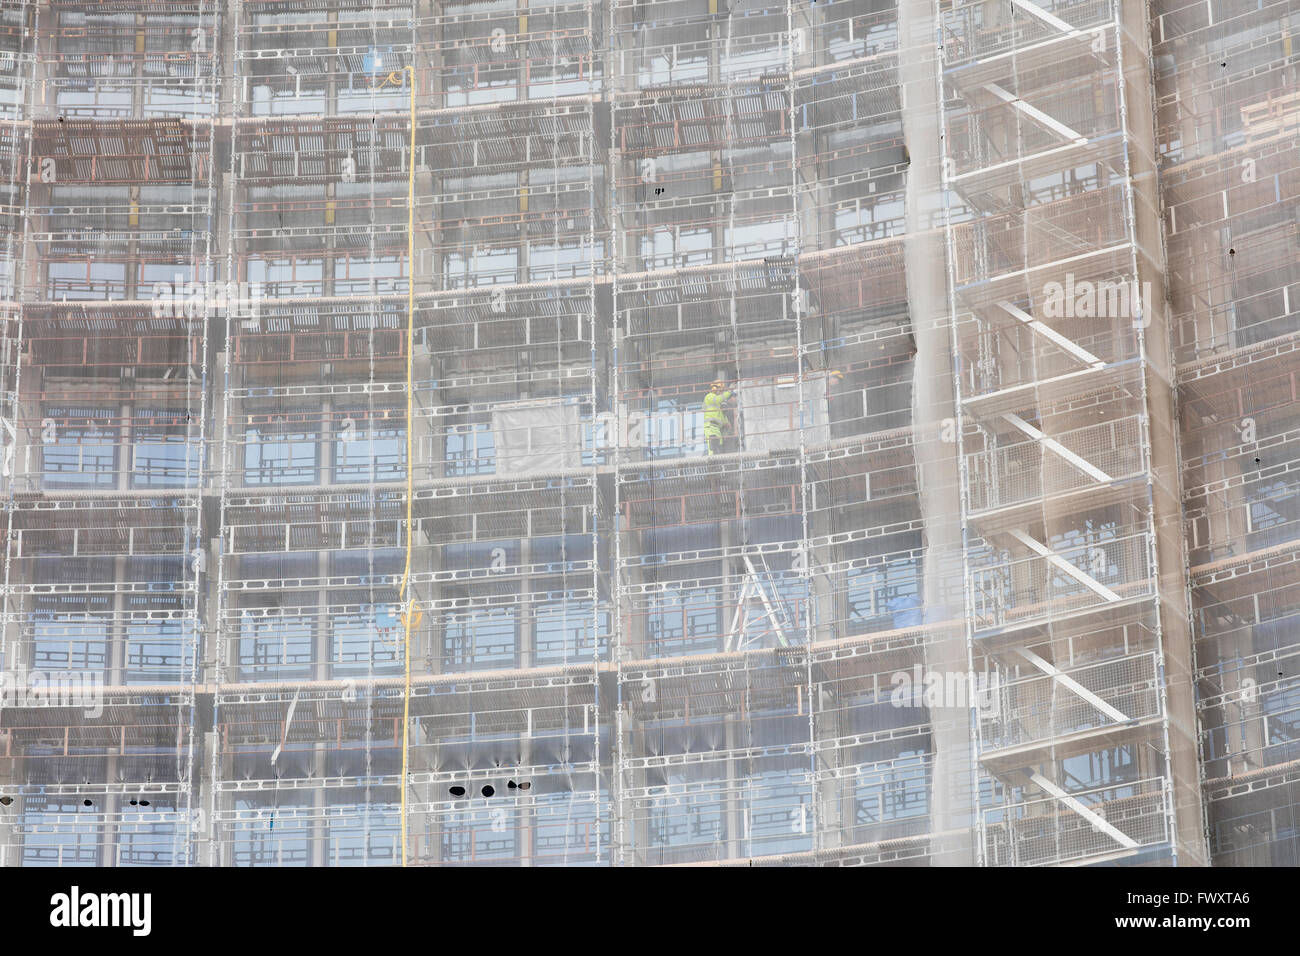 Sweden, Scaffolding on building - Stock Image